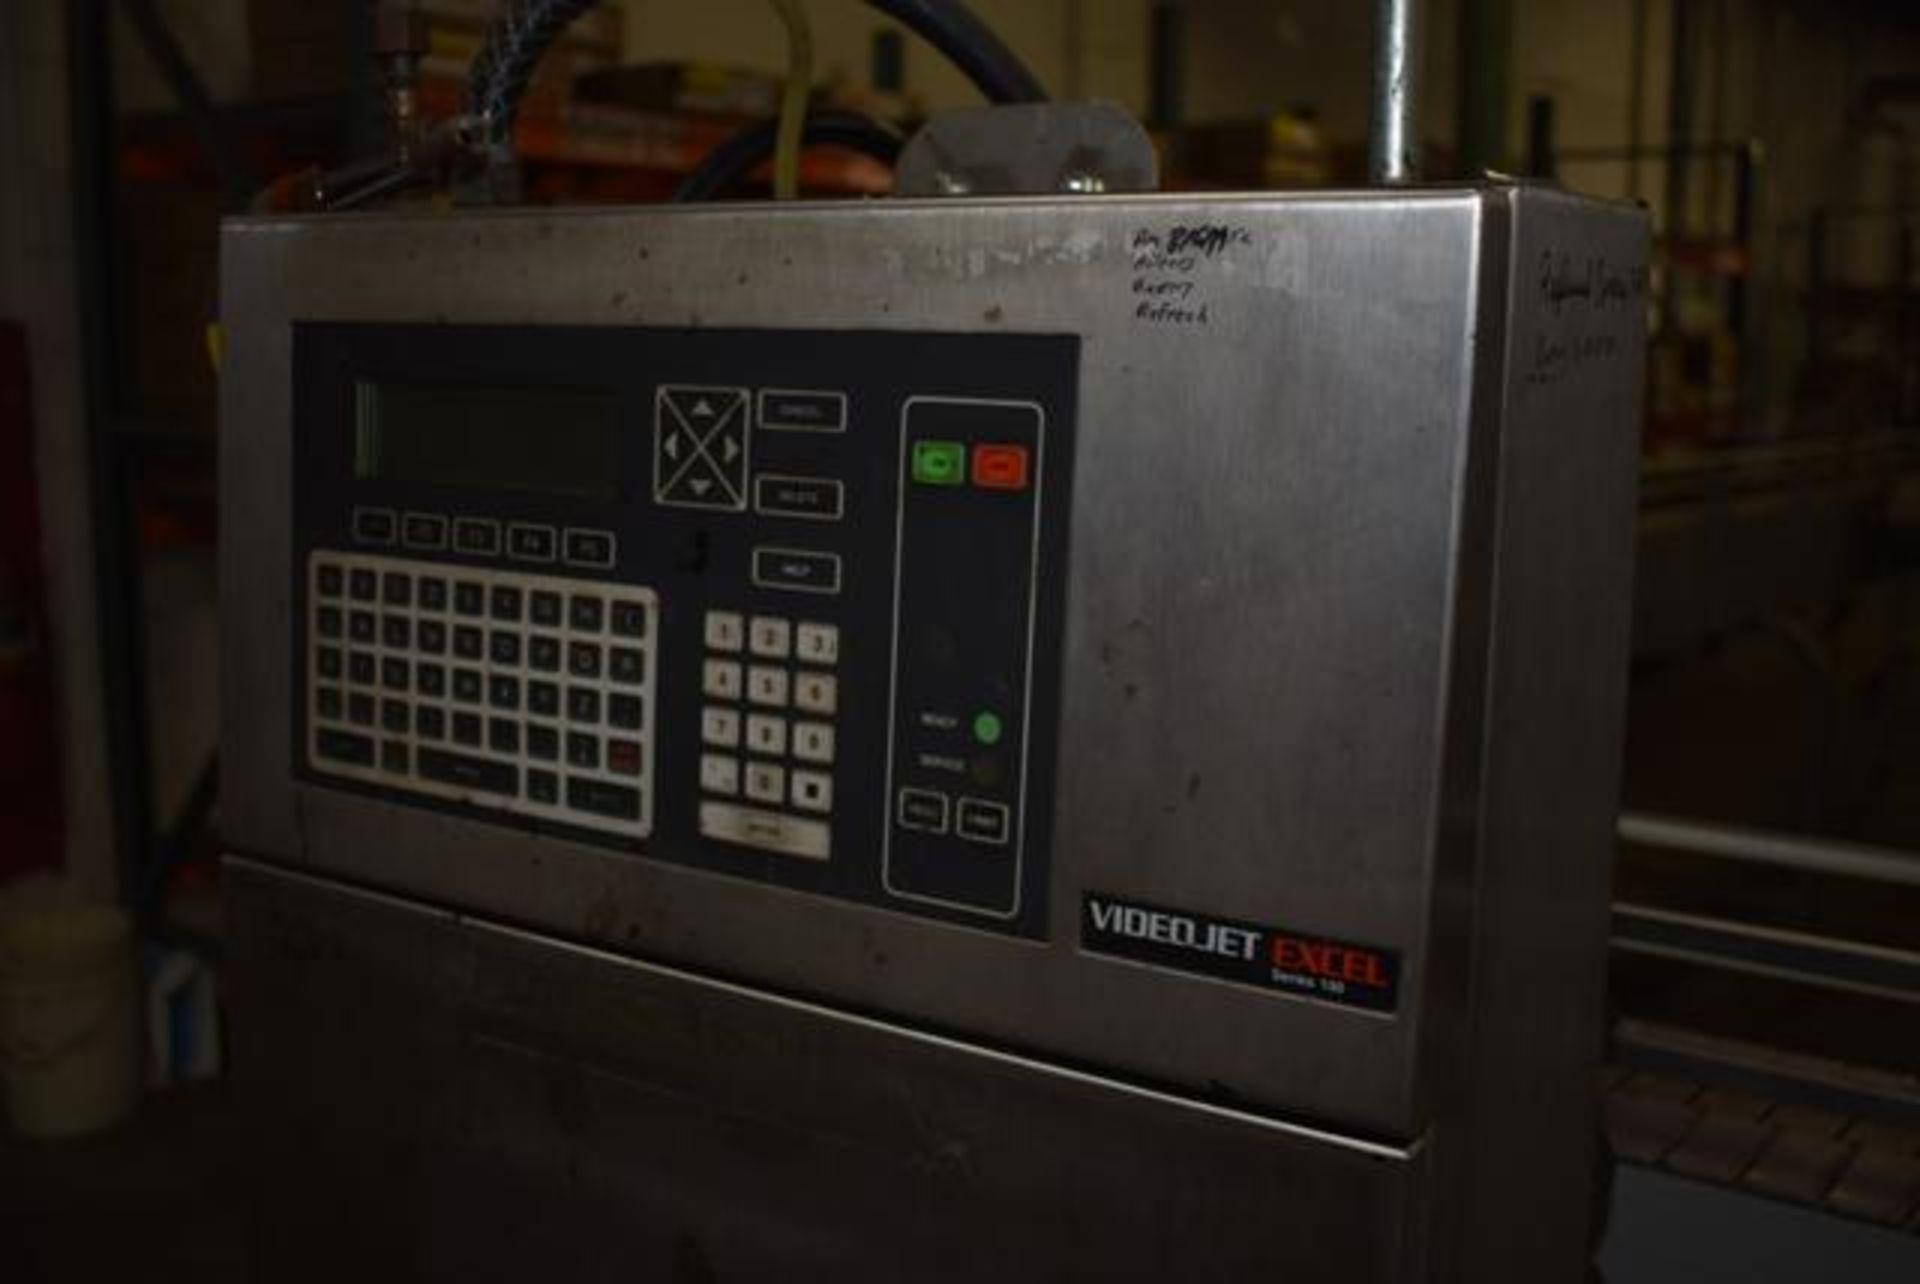 Lot 291 - ( Late Delivery Item Expected Availability Mid May) VideoJet Model #EXCEL 100, Loading Fee: $75